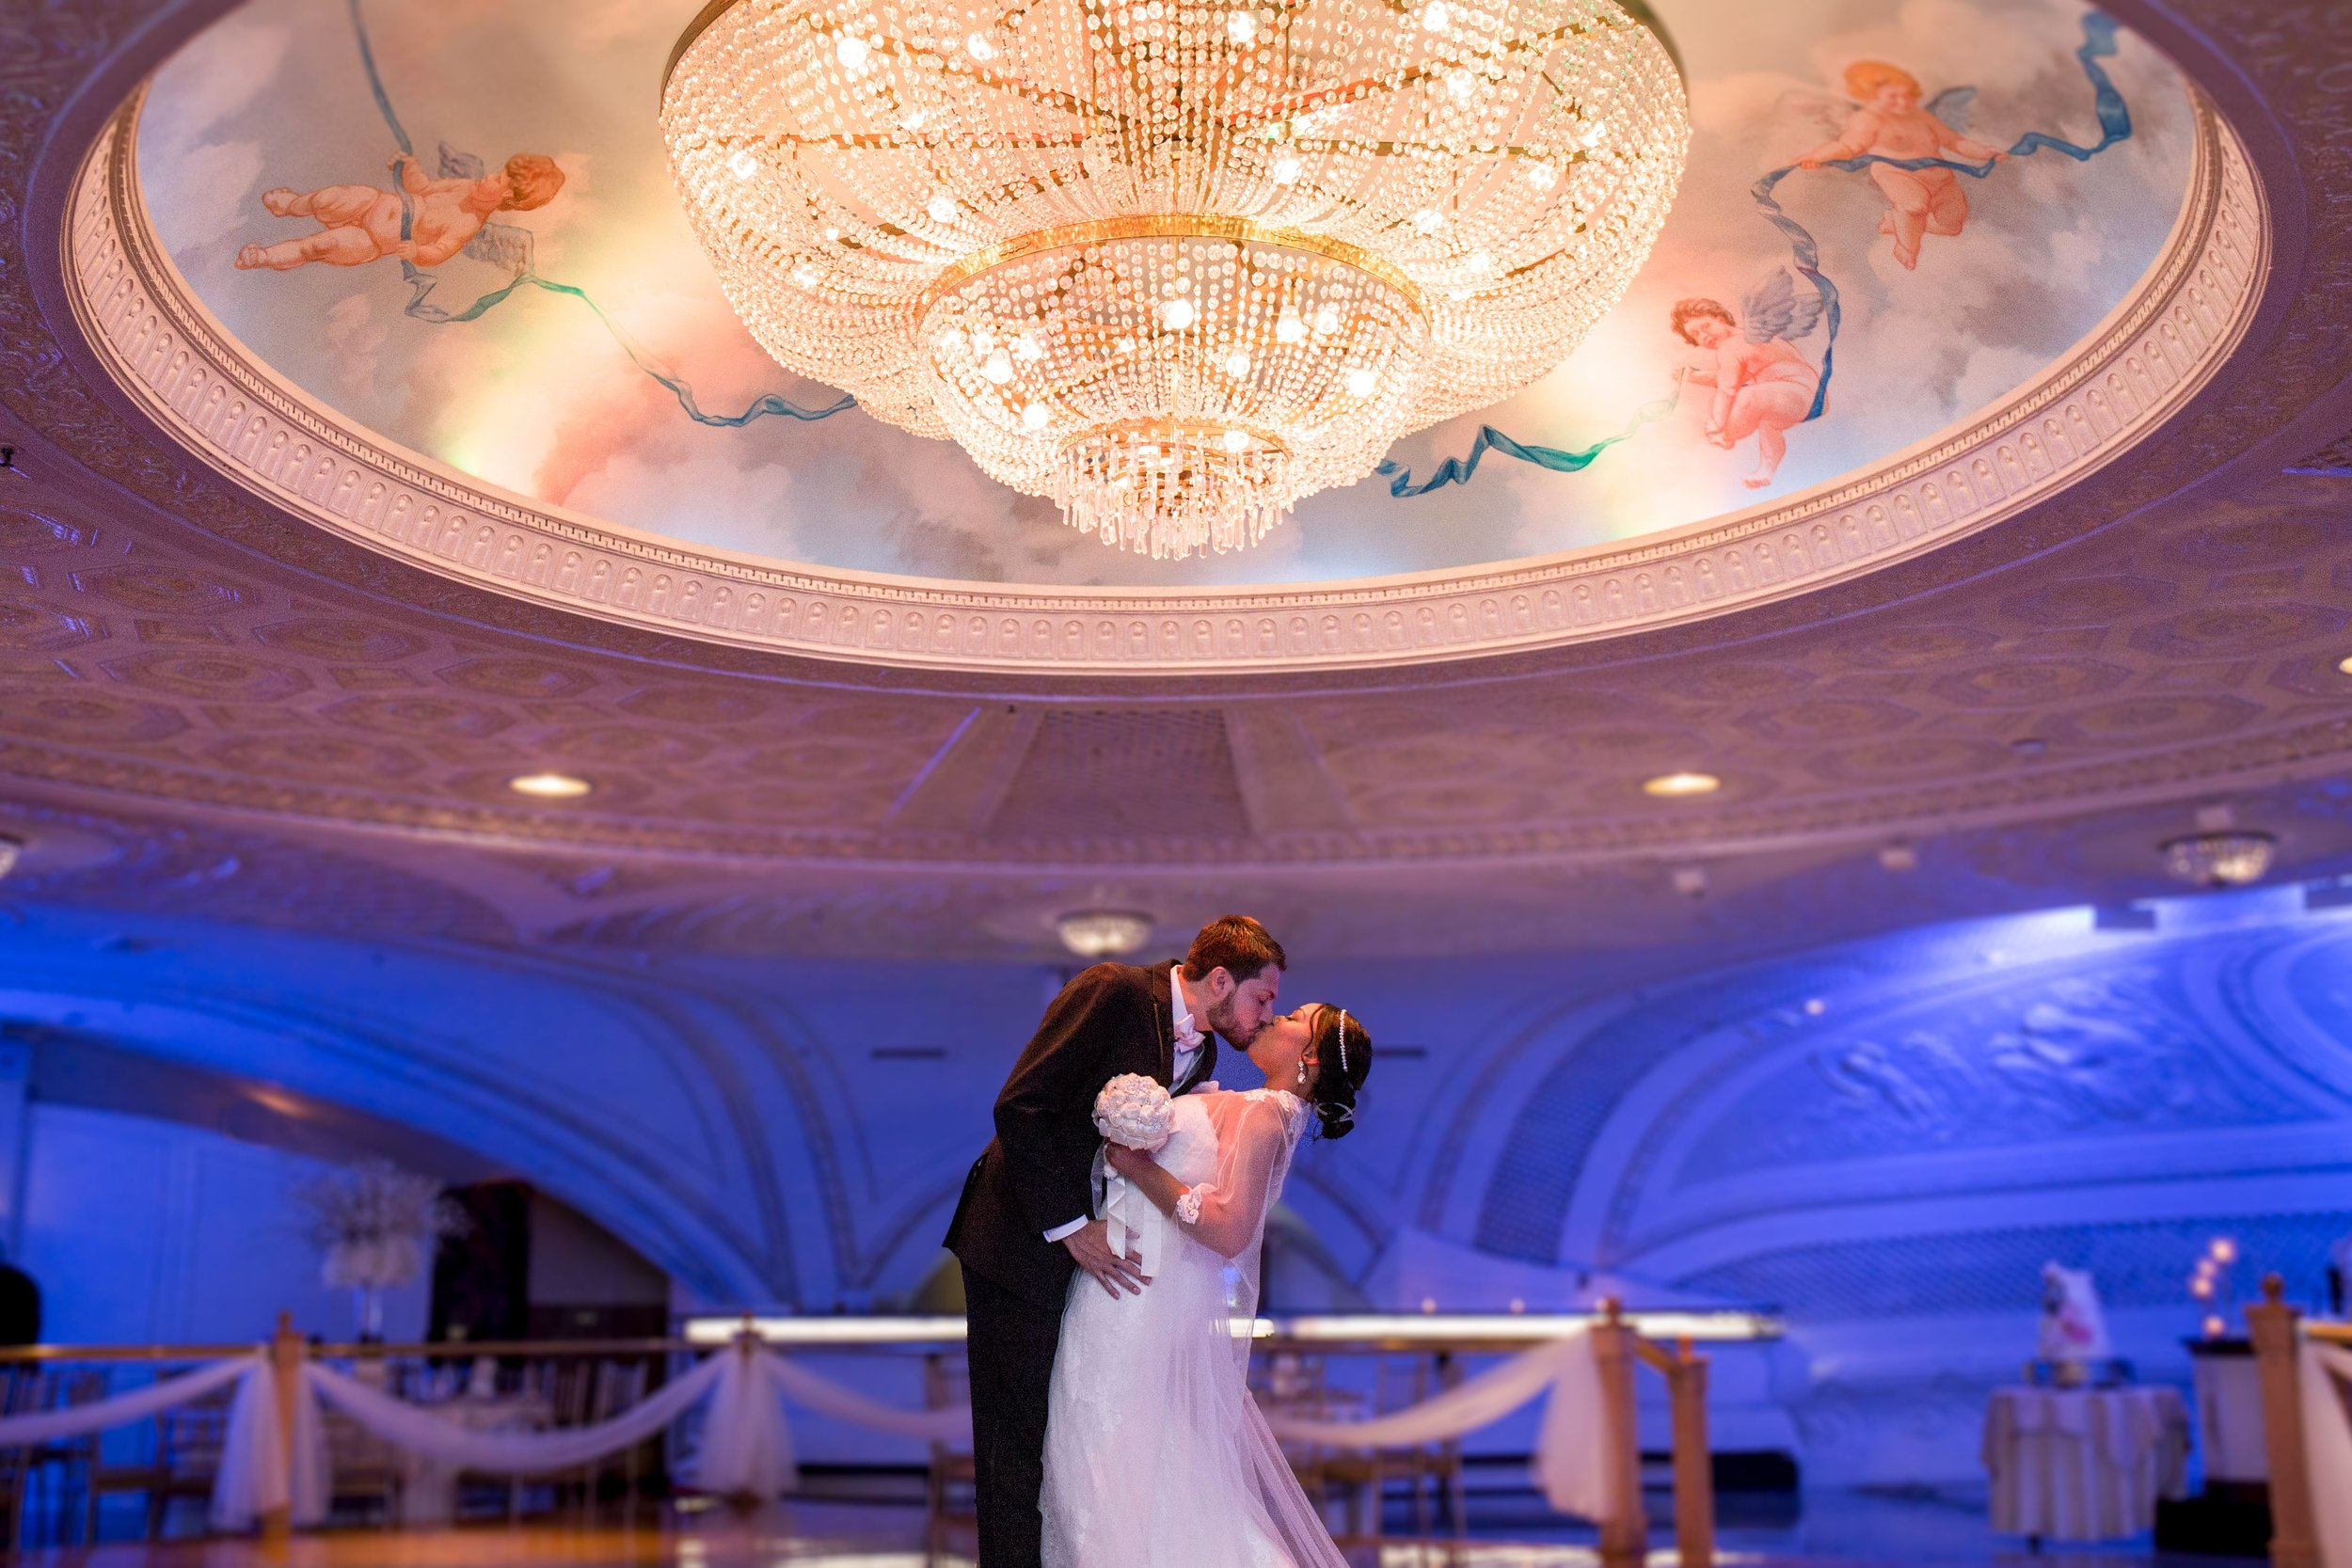 Bride and groom kissing in a ballroom under a large chandelier.